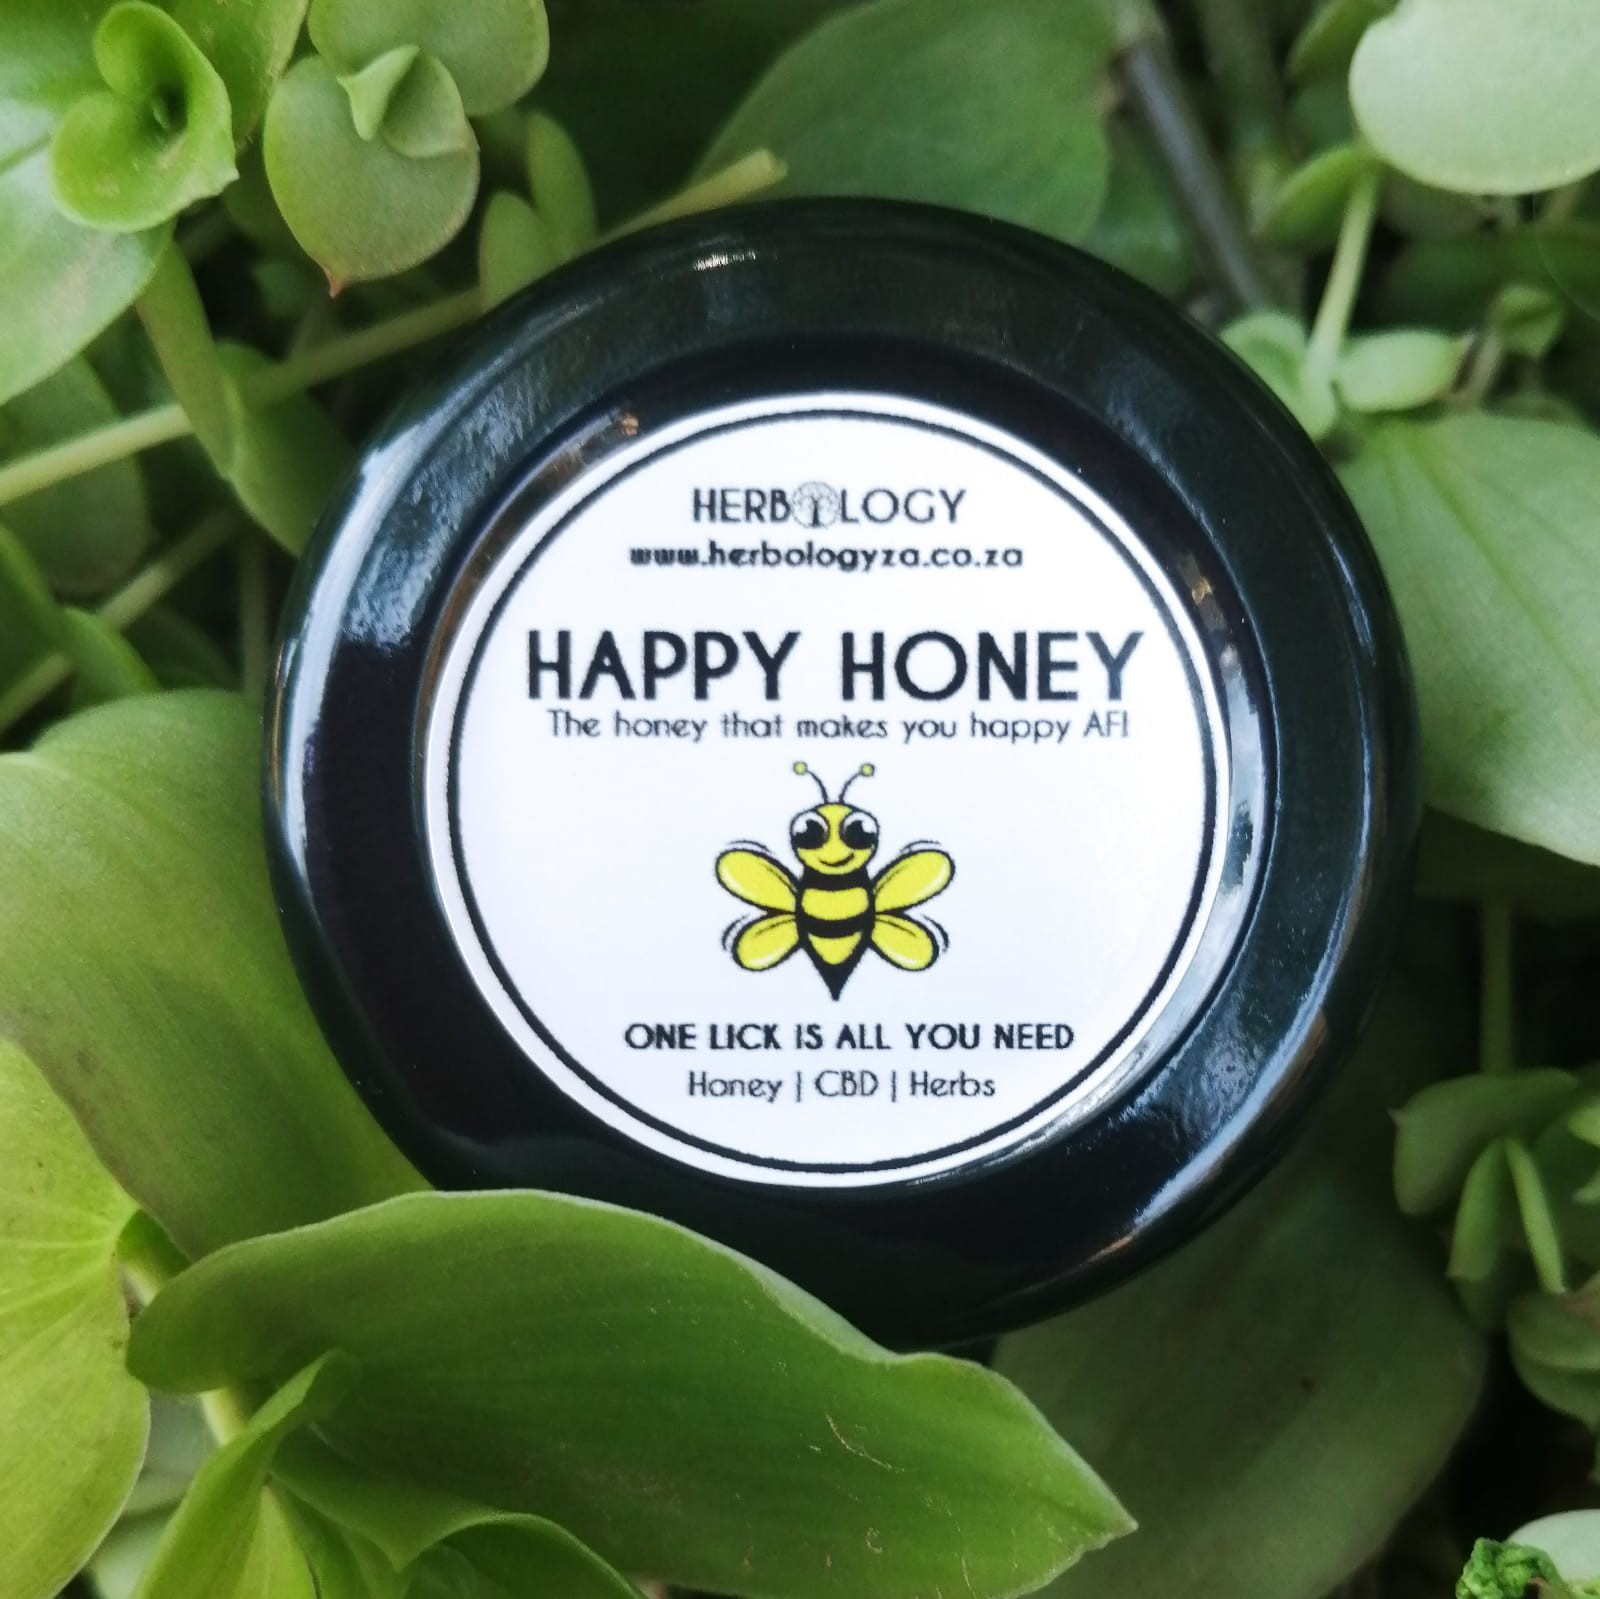 Happy AF honey, infused with the herbal goodness of Happy Caps